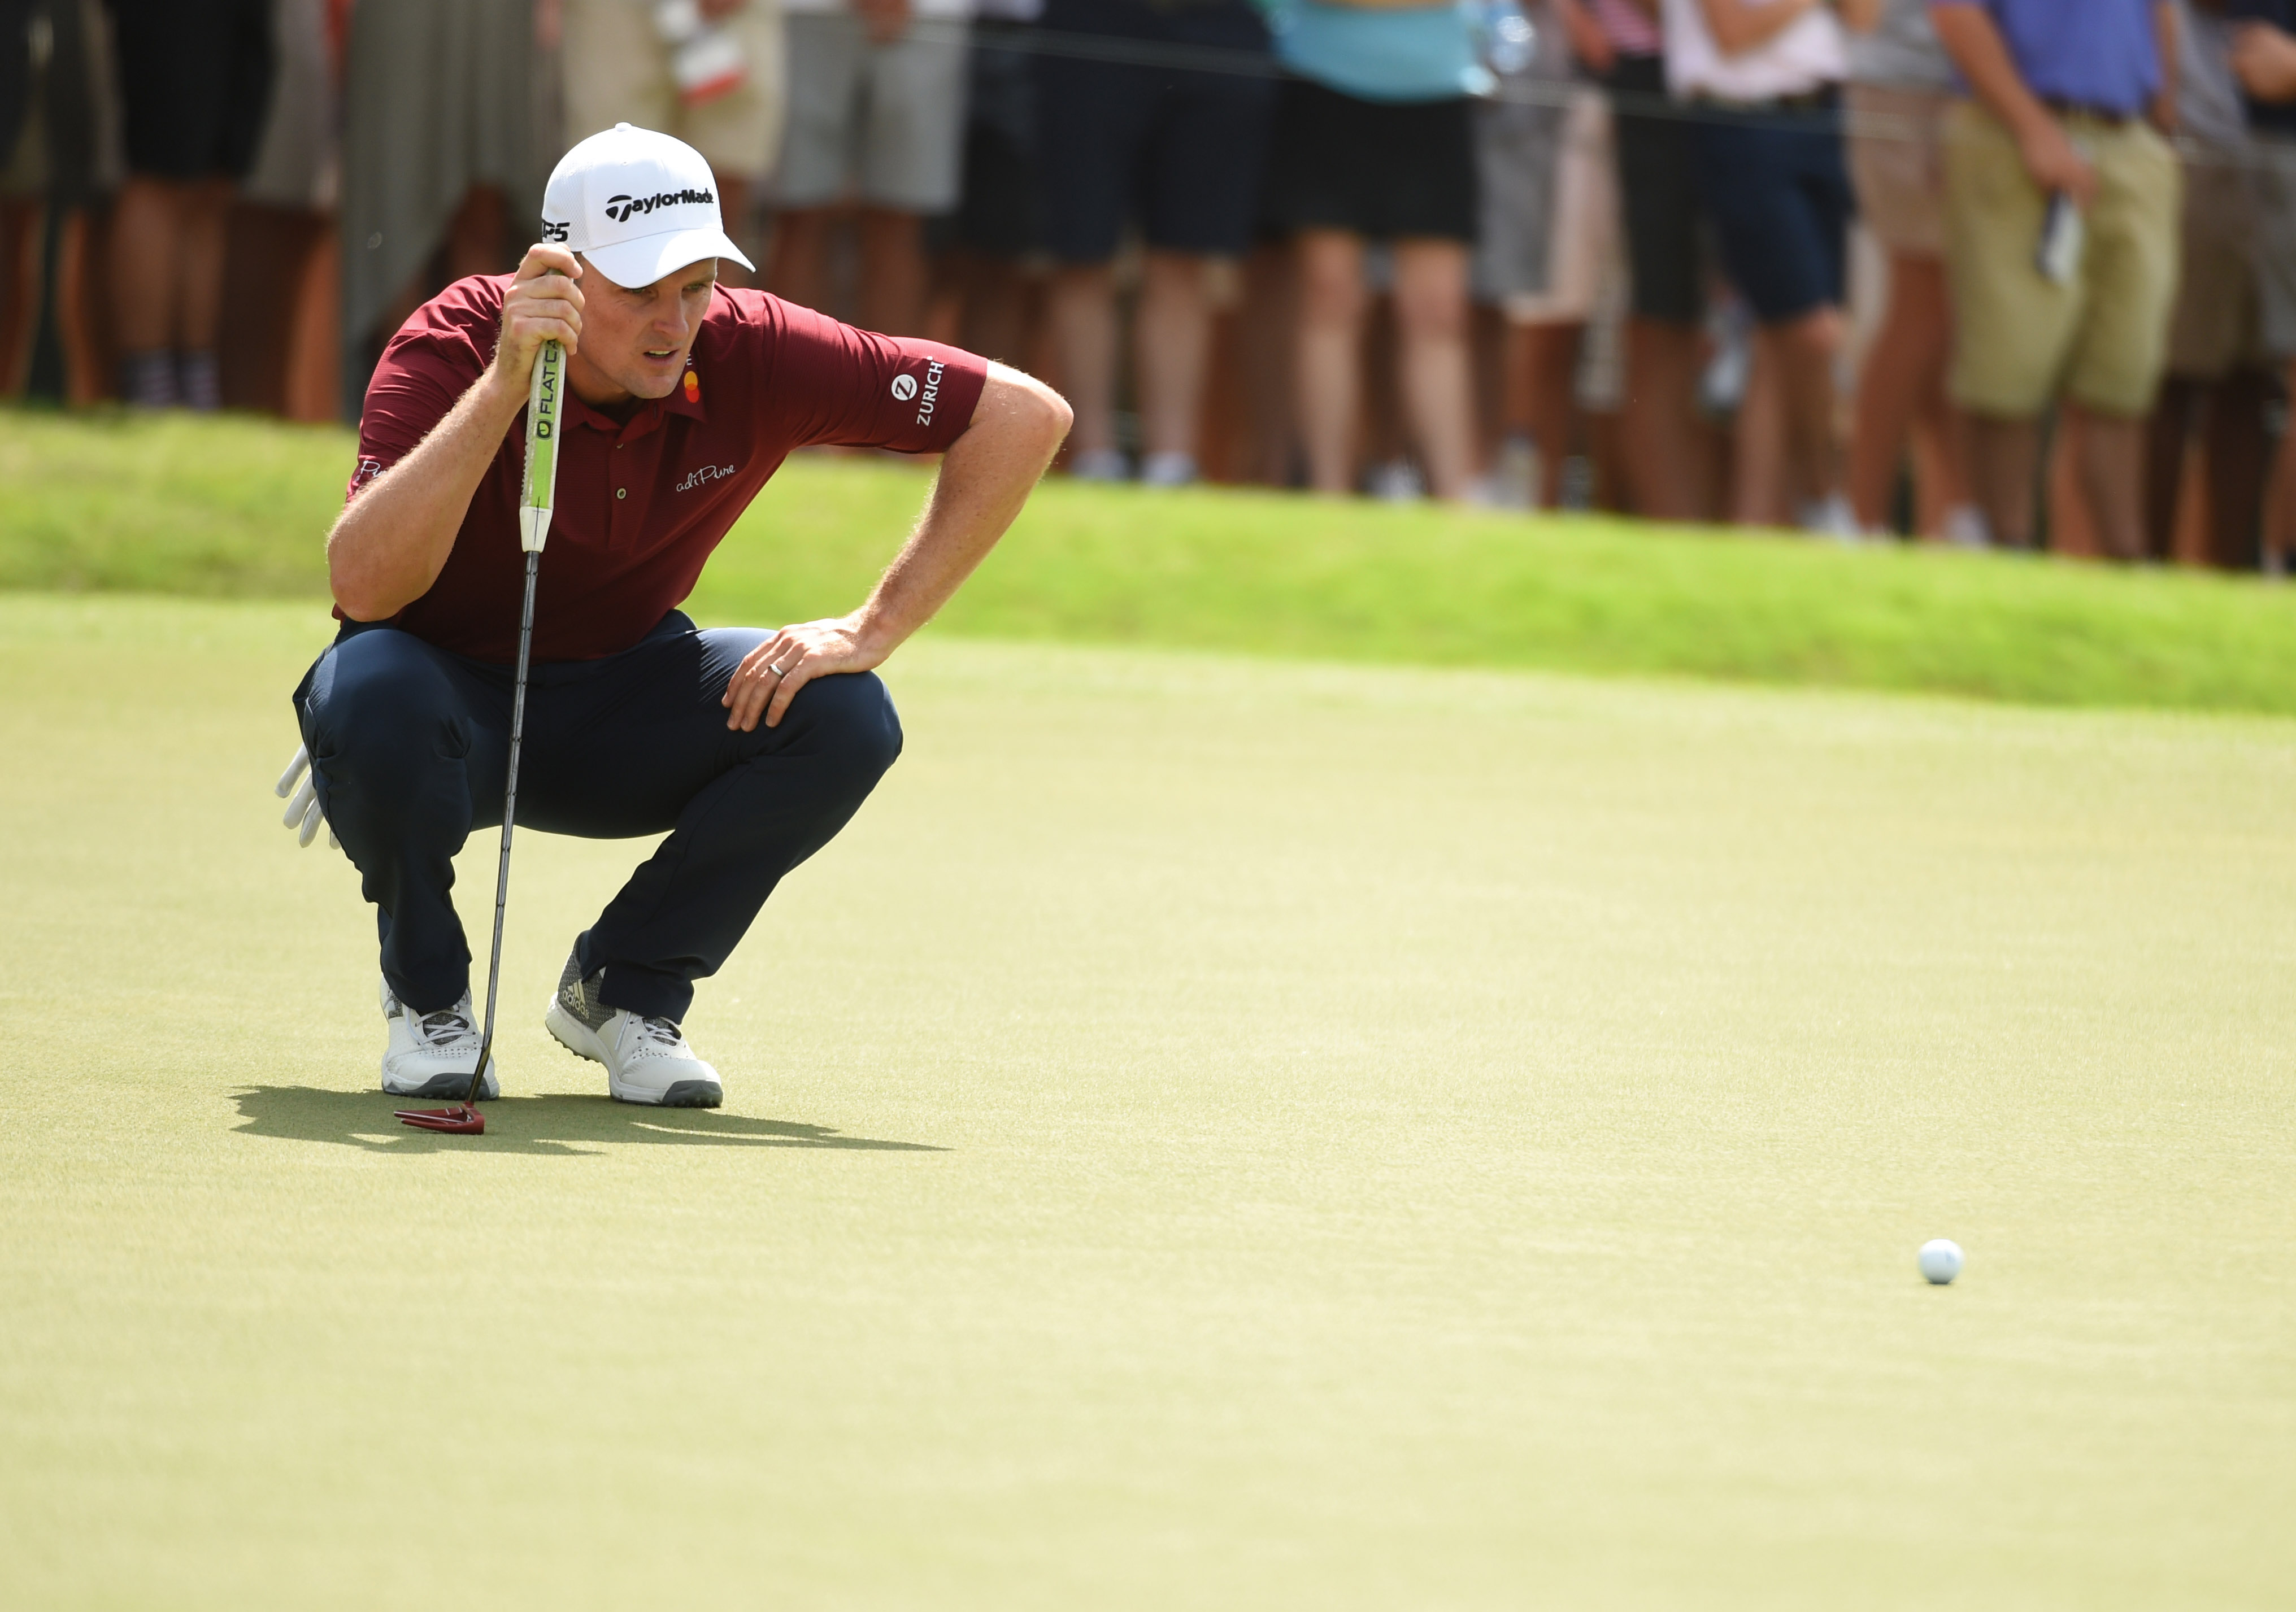 Sep 23, 2018; Atlanta, GA, USA; Justin Rose lines up his putt on the fourth green during the final round of the Tour Championship golf tournament at East Lake Golf Club. Mandatory Credit: John David Mercer-USA TODAY Sports